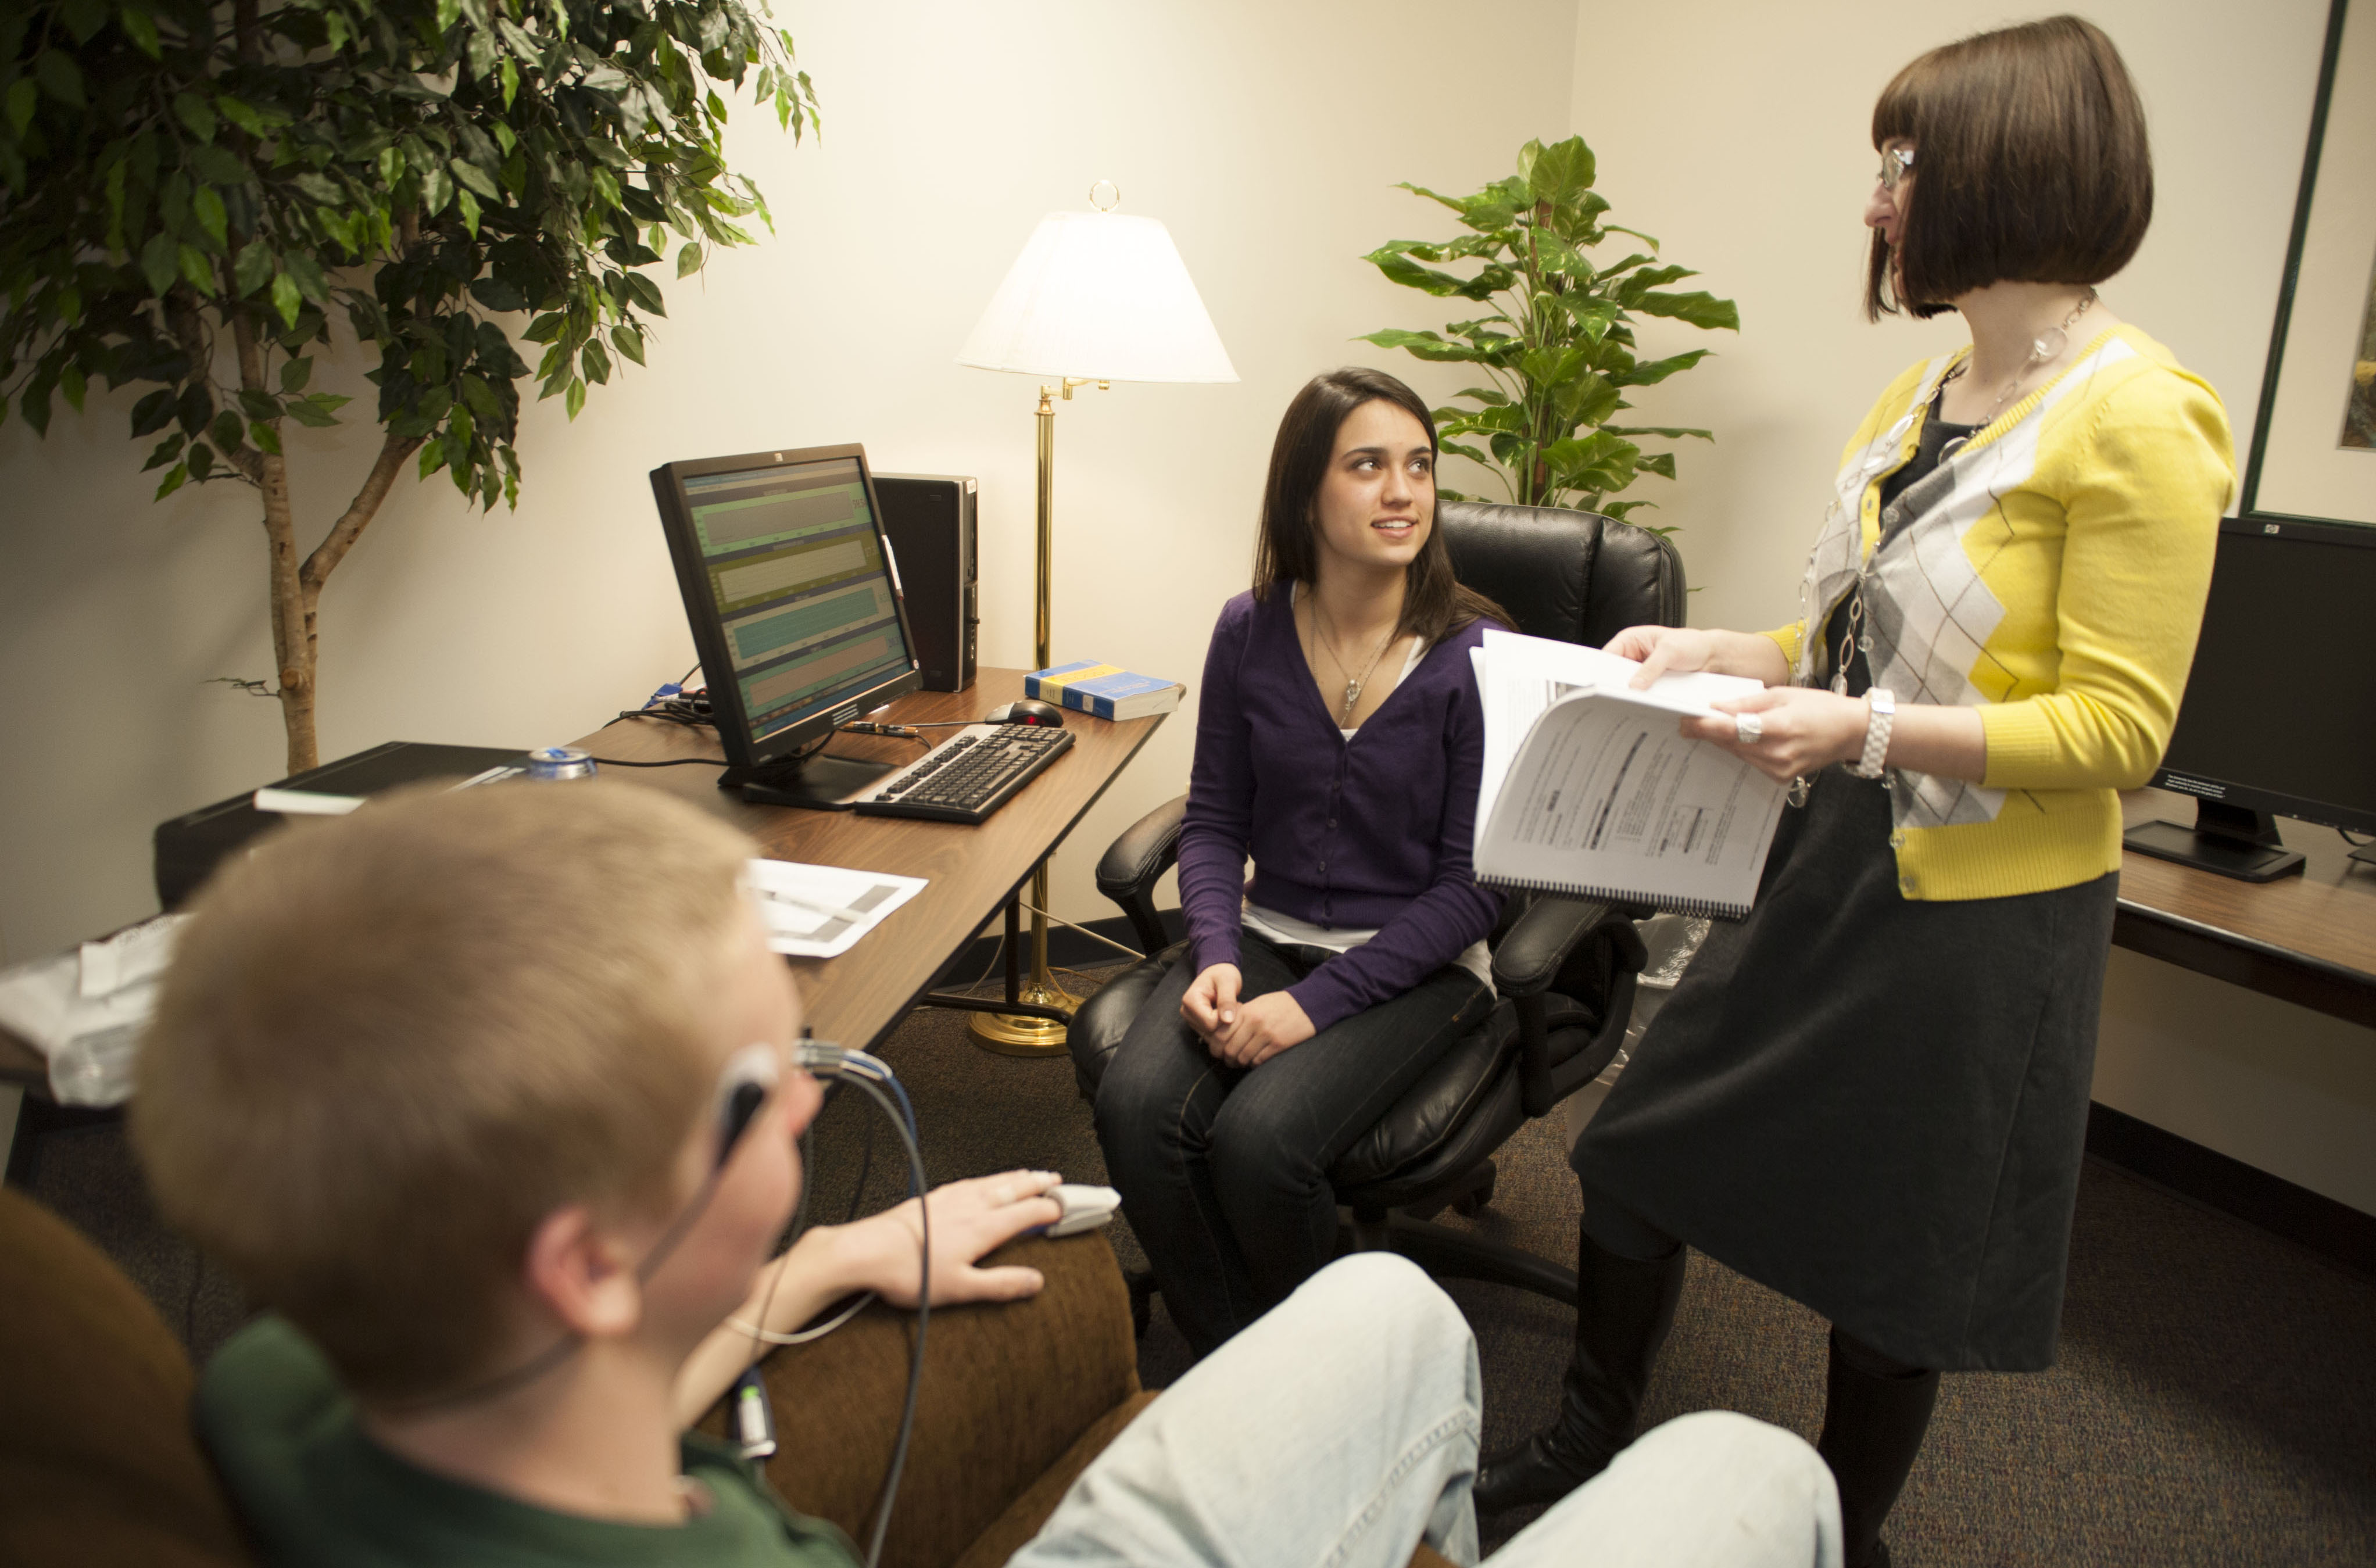 Internships present an opportunity for psychology students to acquire practical training and experience in their field. Photo credit: Scott L. Huck/Cedarville University